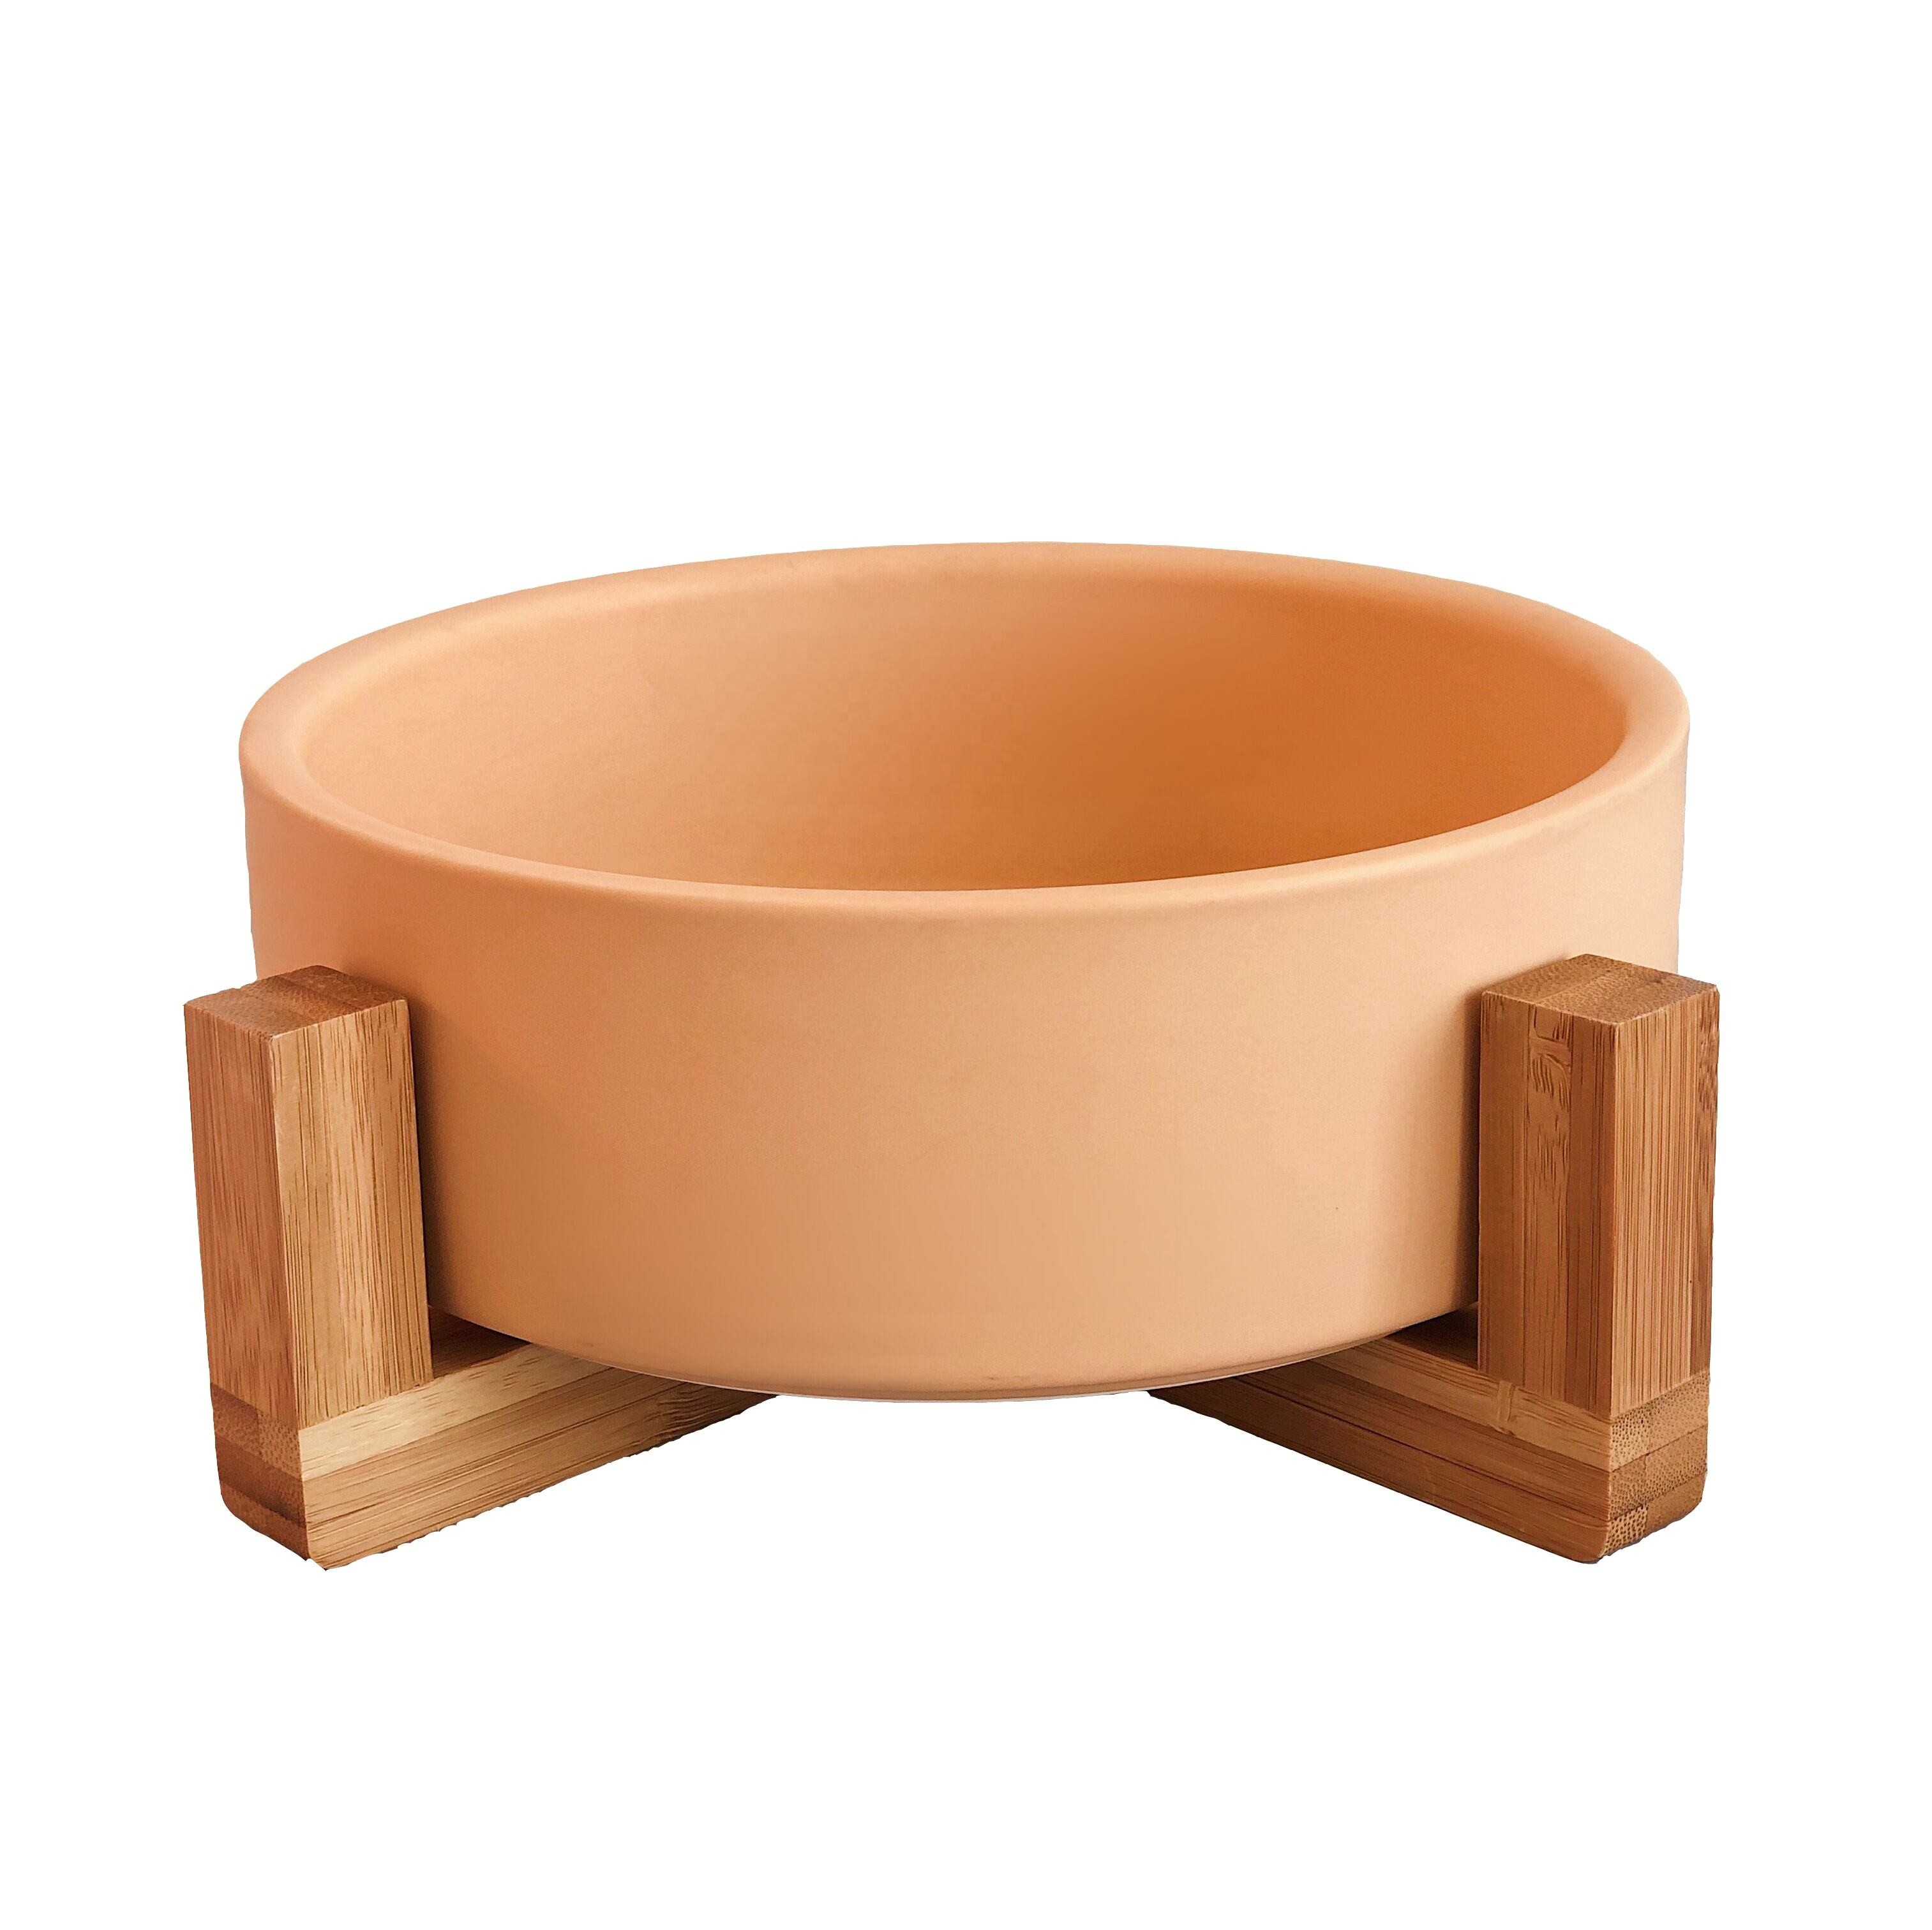 Wholesale custom matted elevated dog bowl non slip ceramic pet bowl with wooden stand